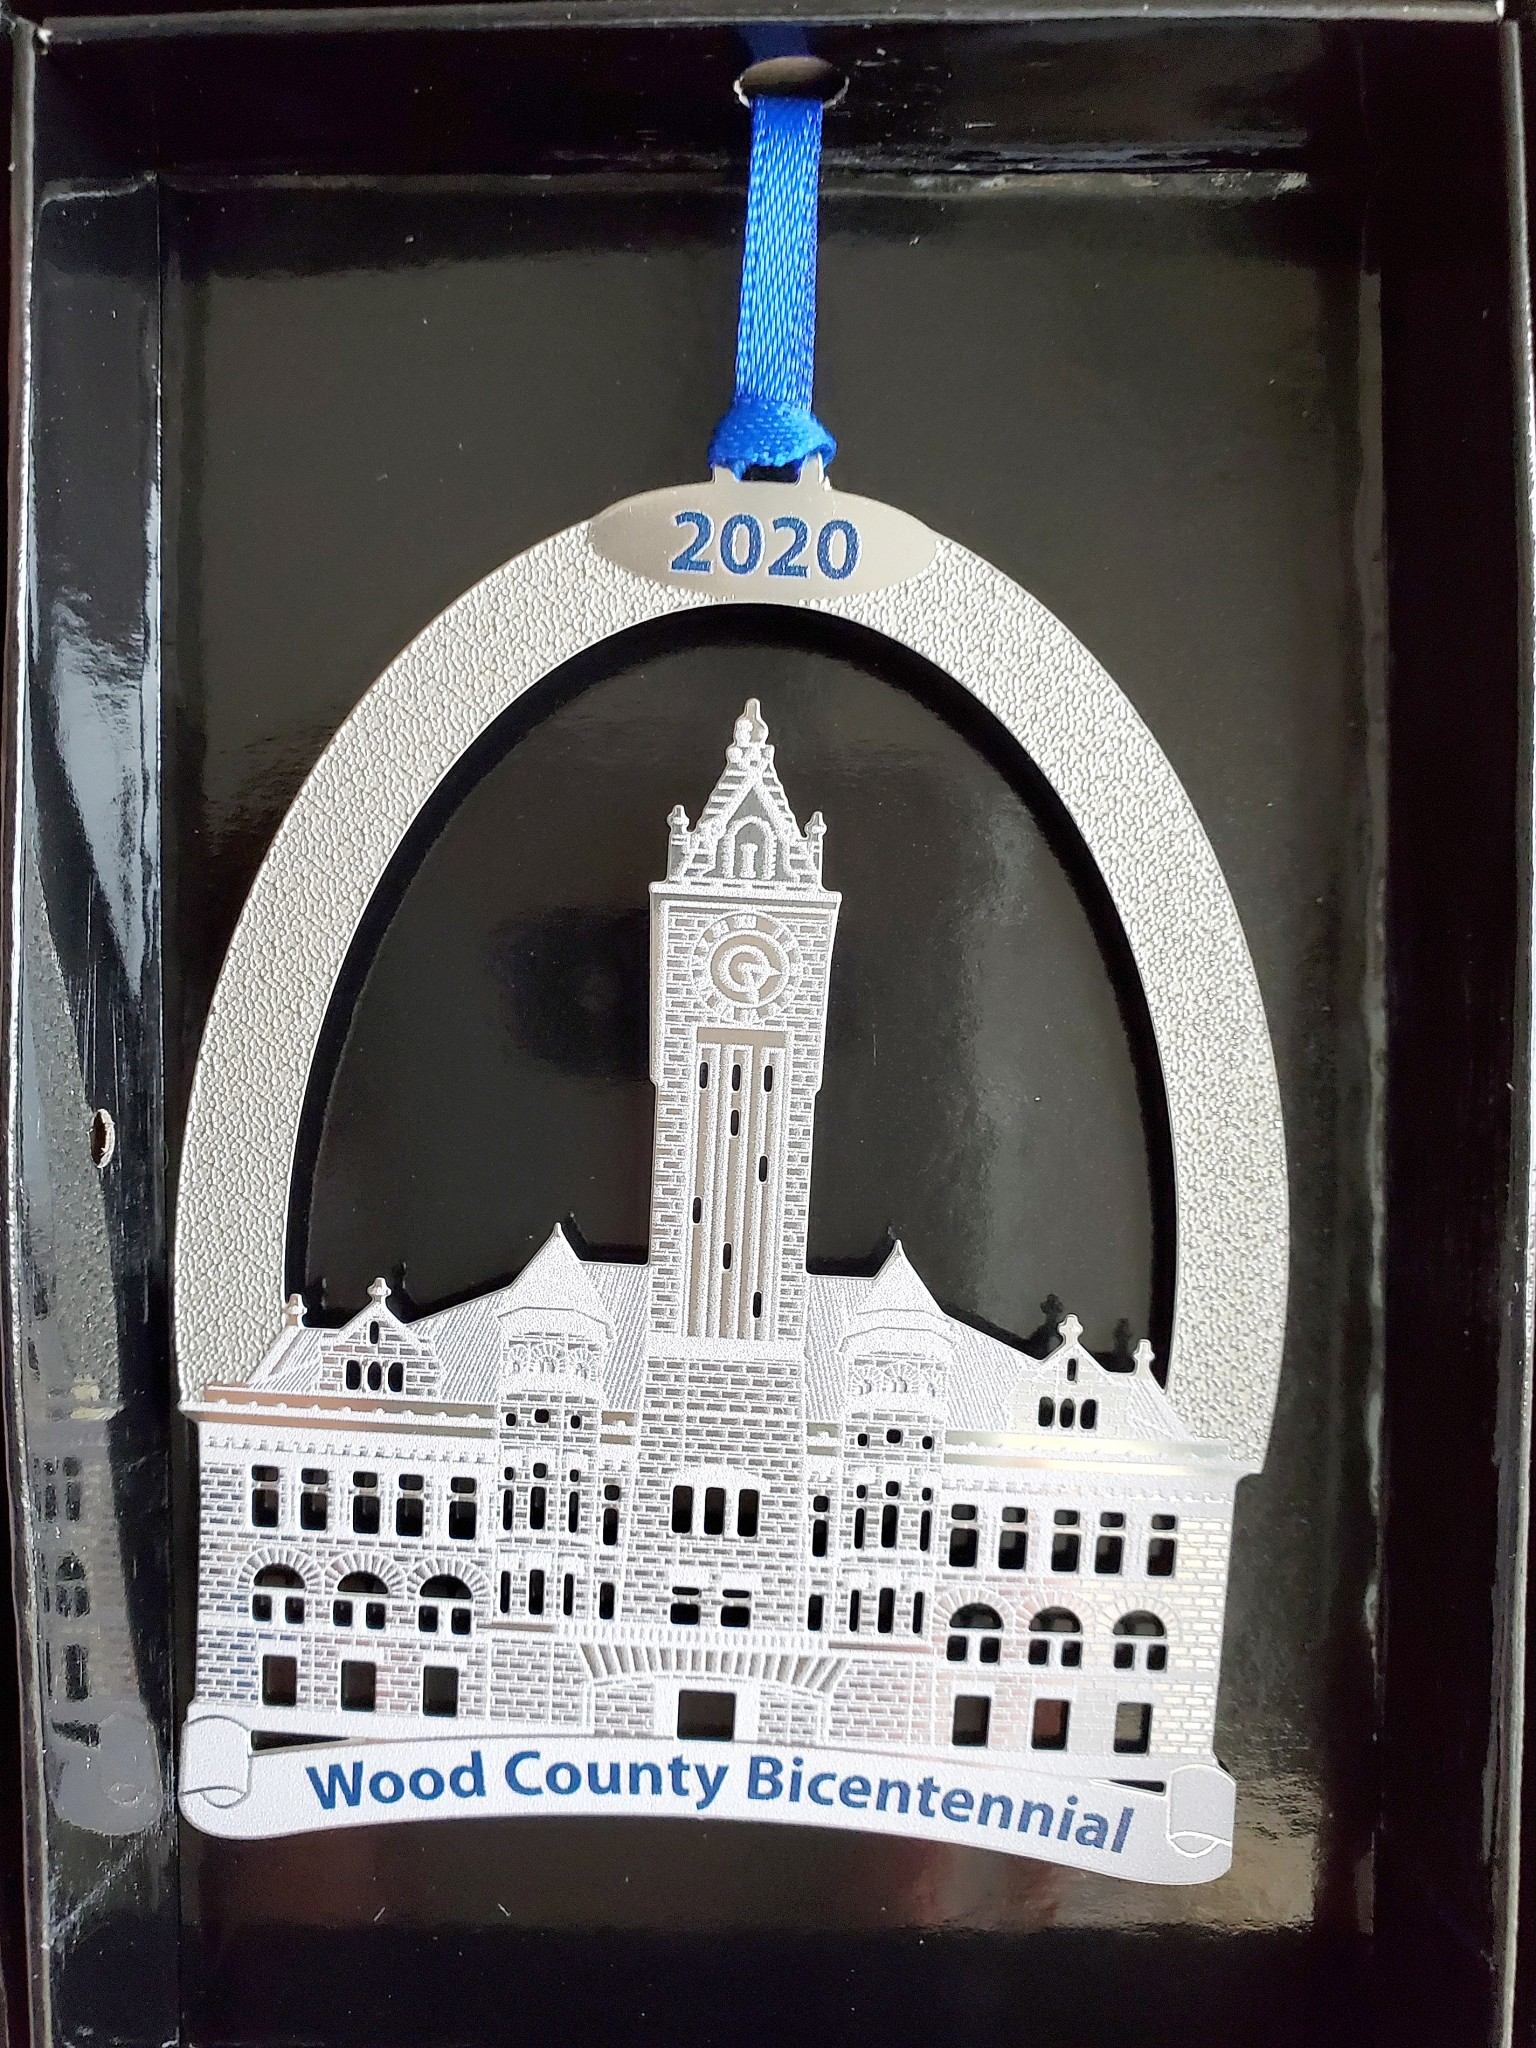 Christmas ornaments celebrating the 200th anniversary of Wood County are now on sale in several locations in the community.